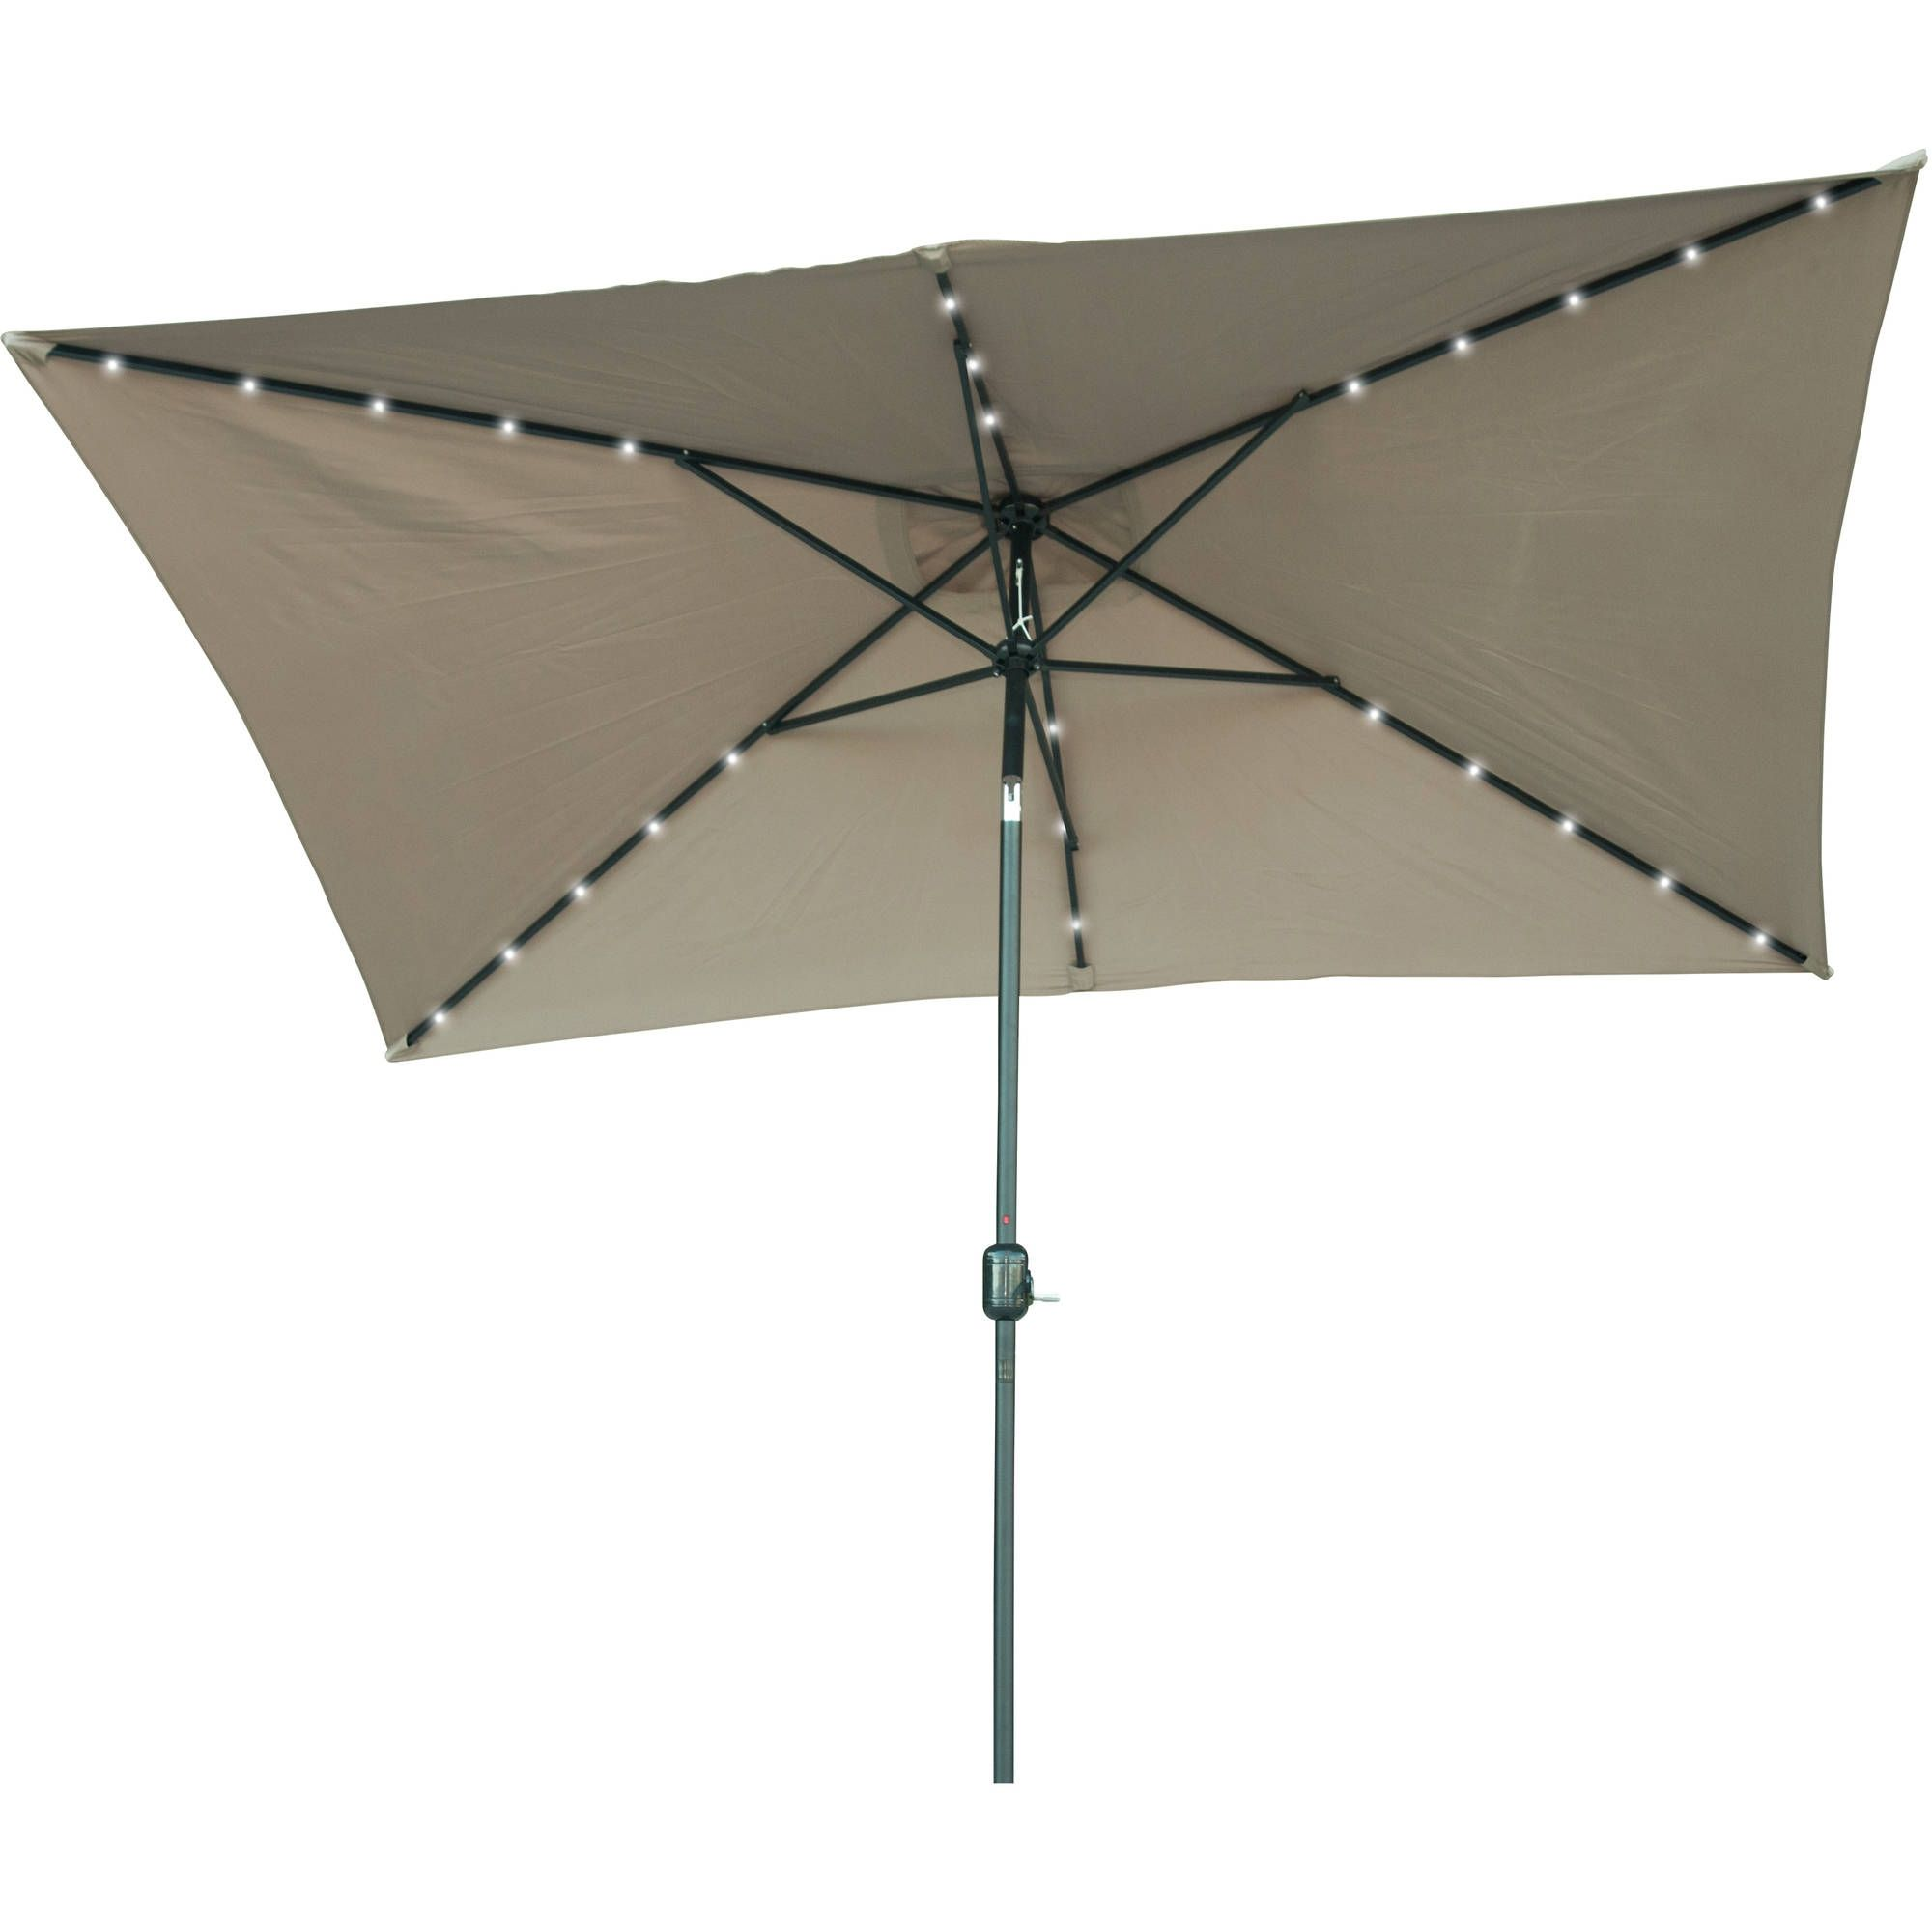 Rectangular Patio Umbrella With Solar Lights Delectable Rectangular Patio Umbrella With Solar Lights  Patio Decor 2018